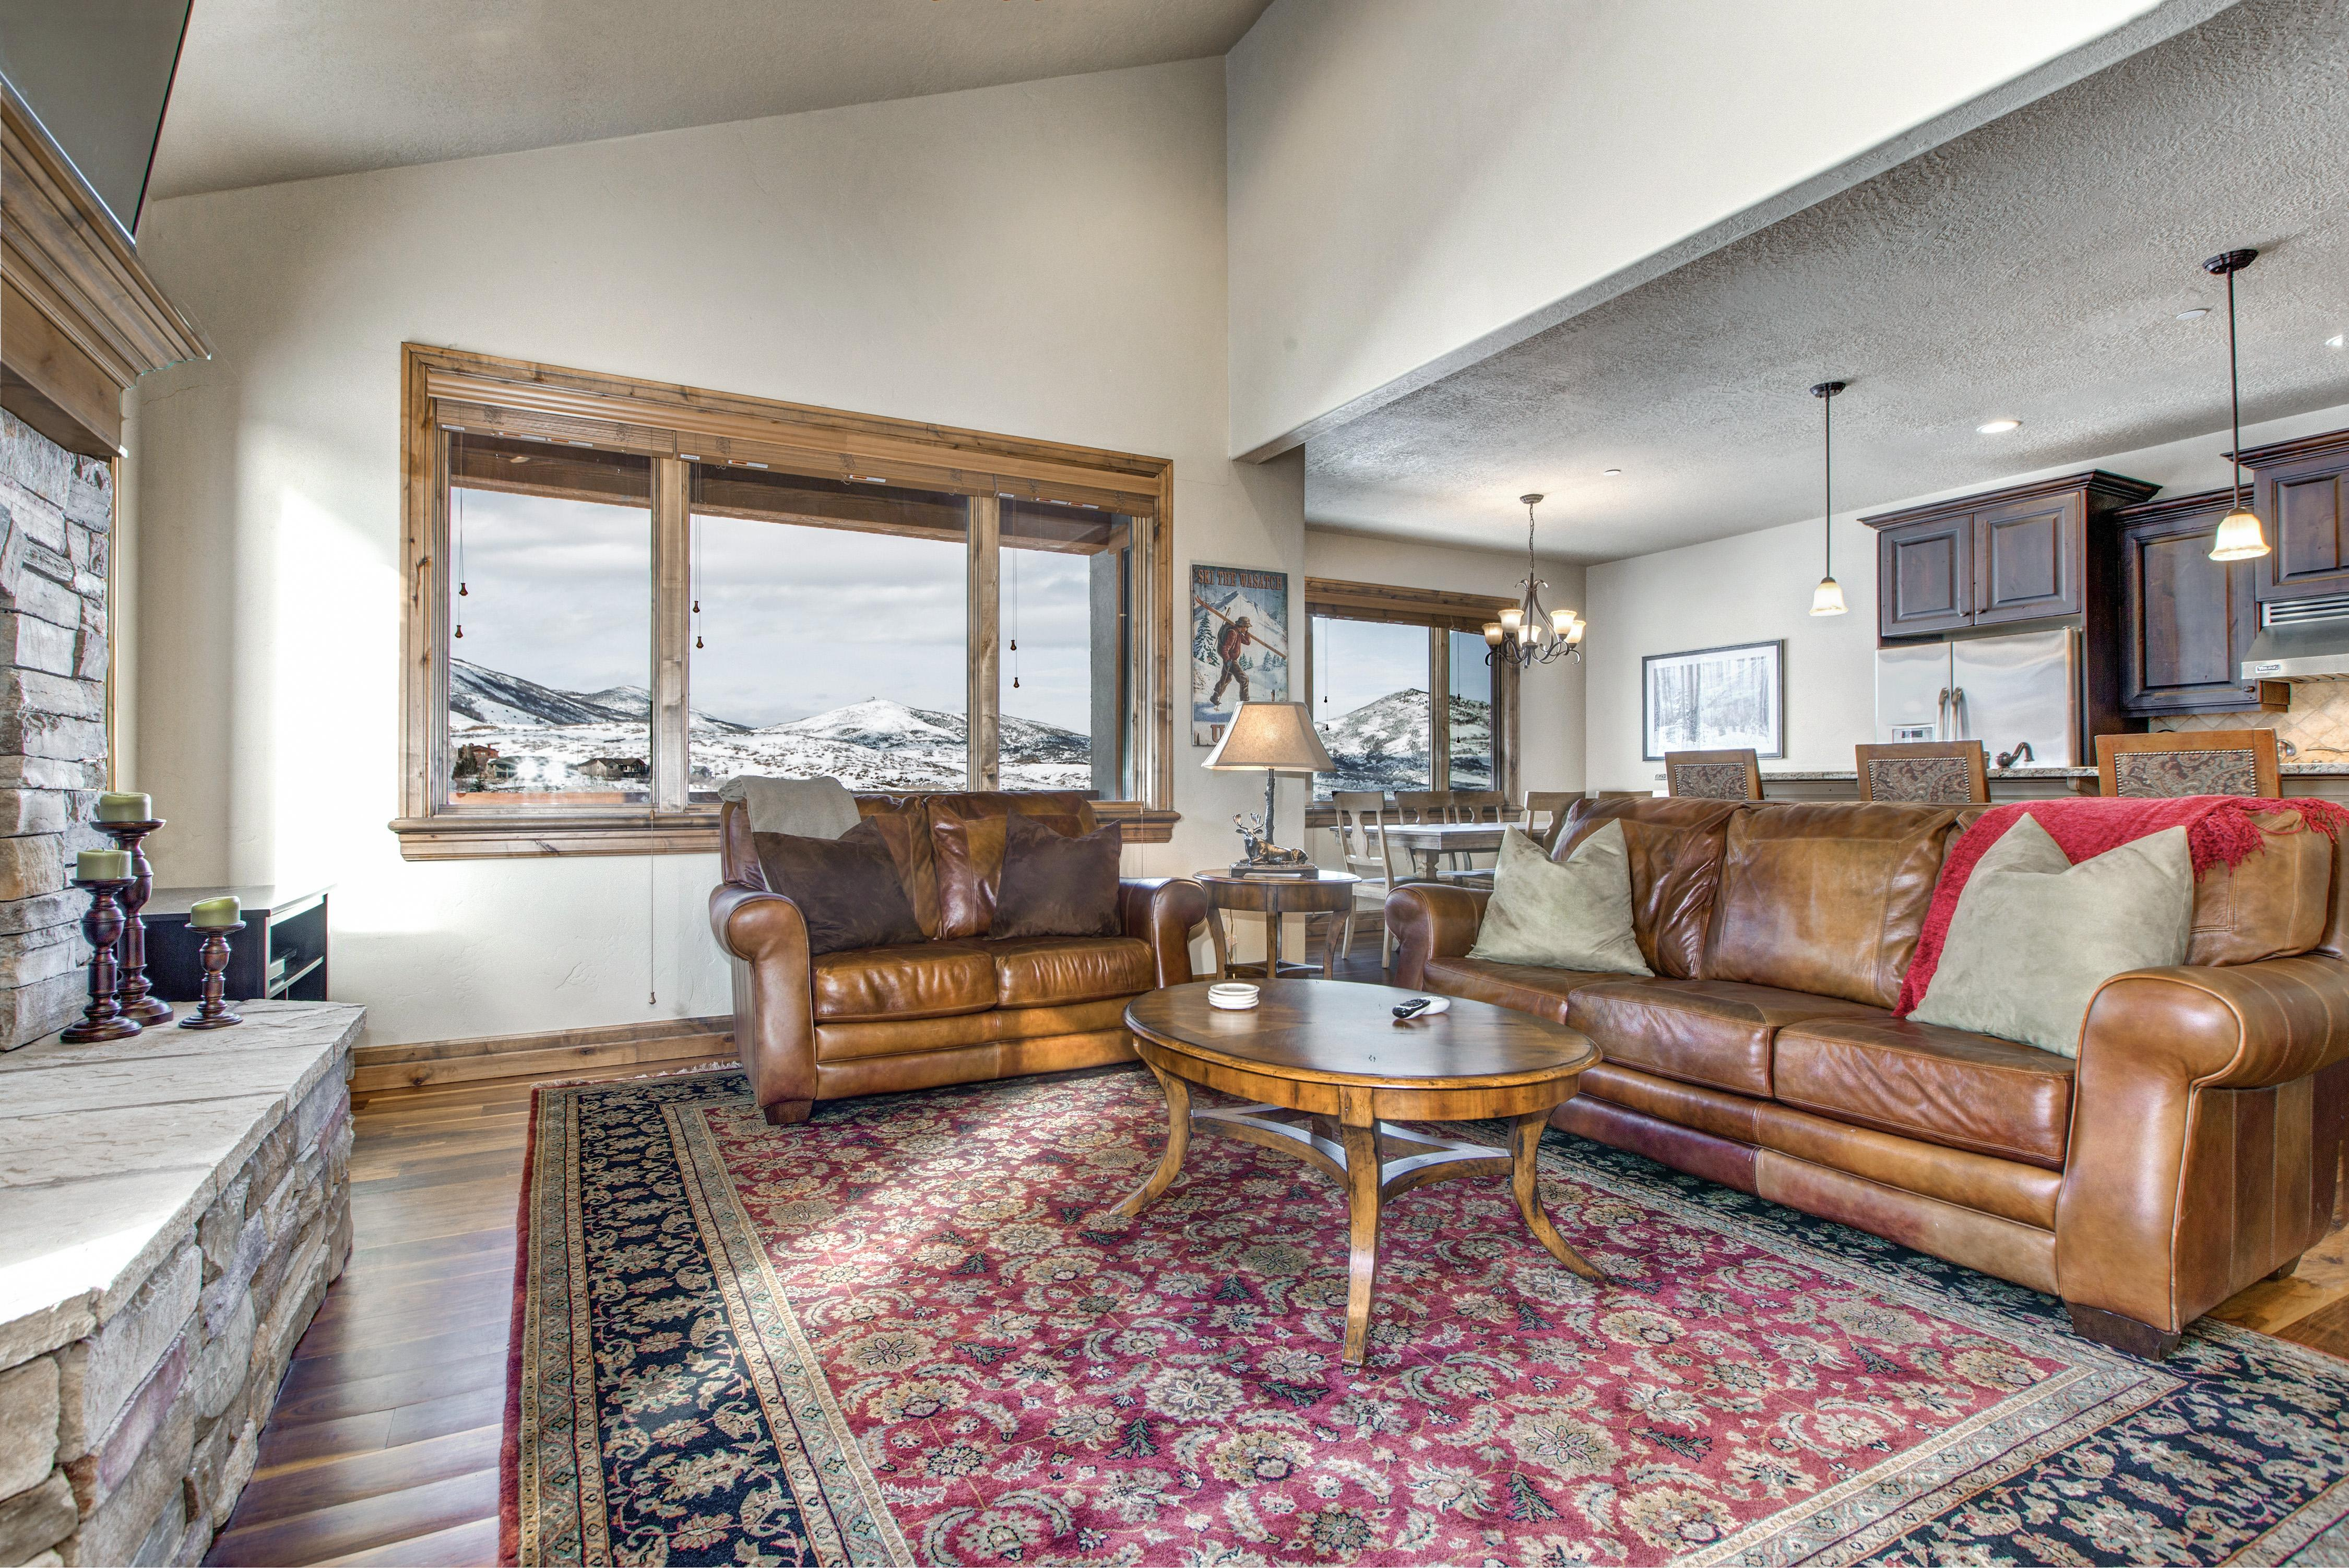 Property Image 2 - Impressive Rustic Mountain Condo with Stunning Slope Views